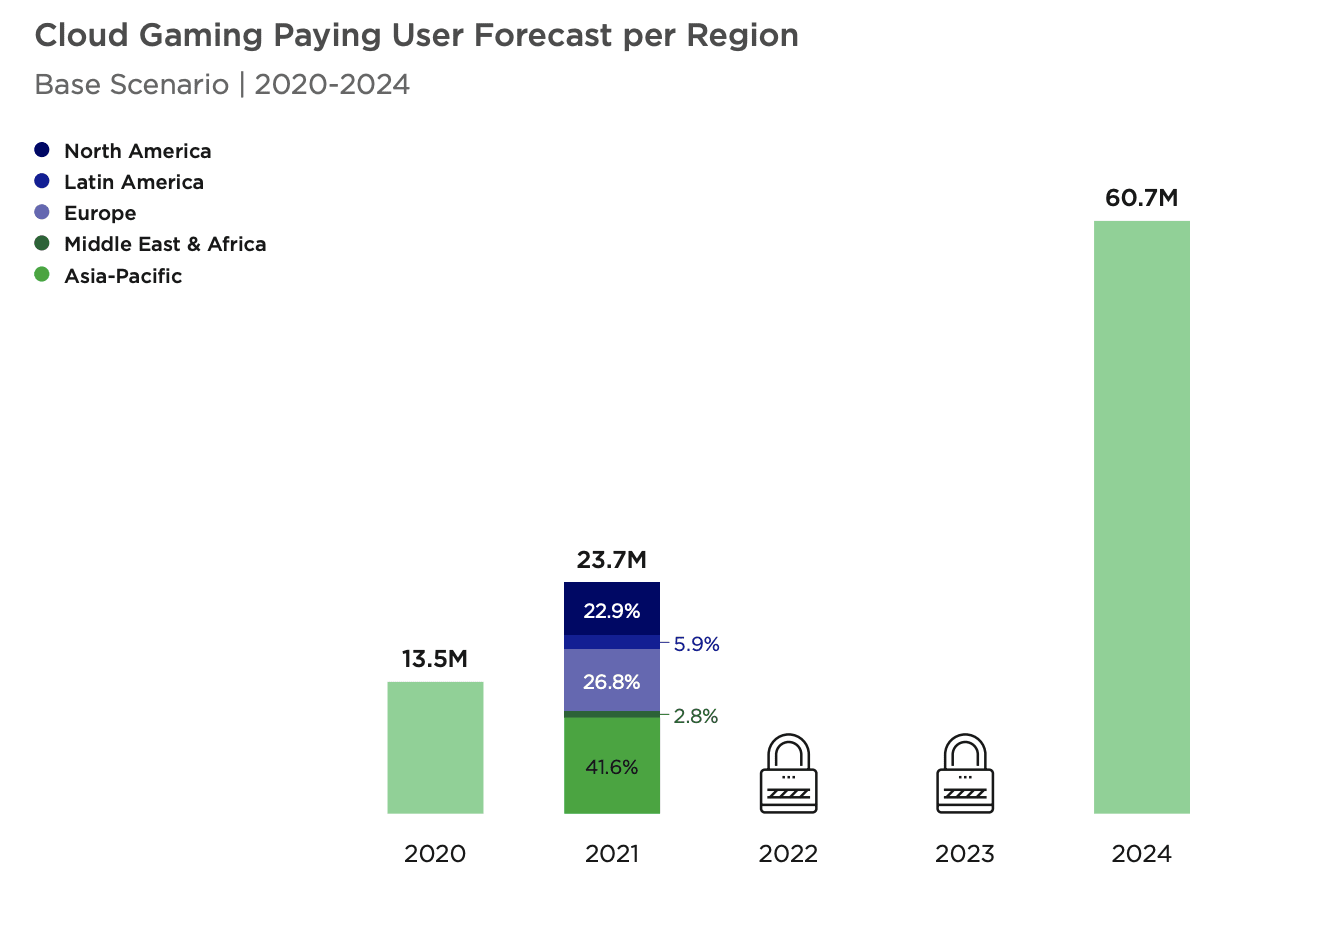 Cloud gaming forecast